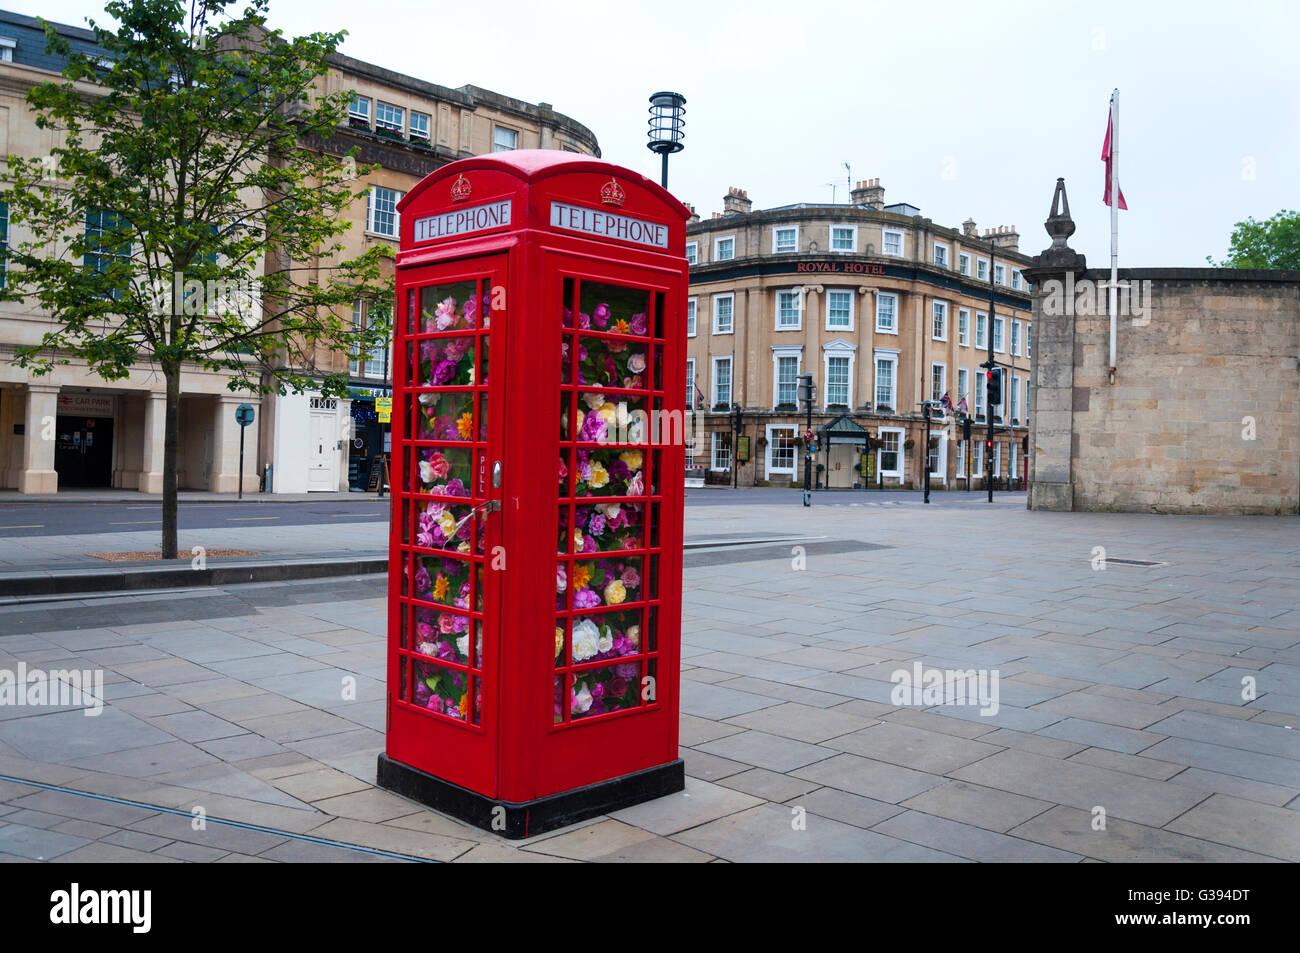 Traditional red telephone box filled with flowers - Stock Image